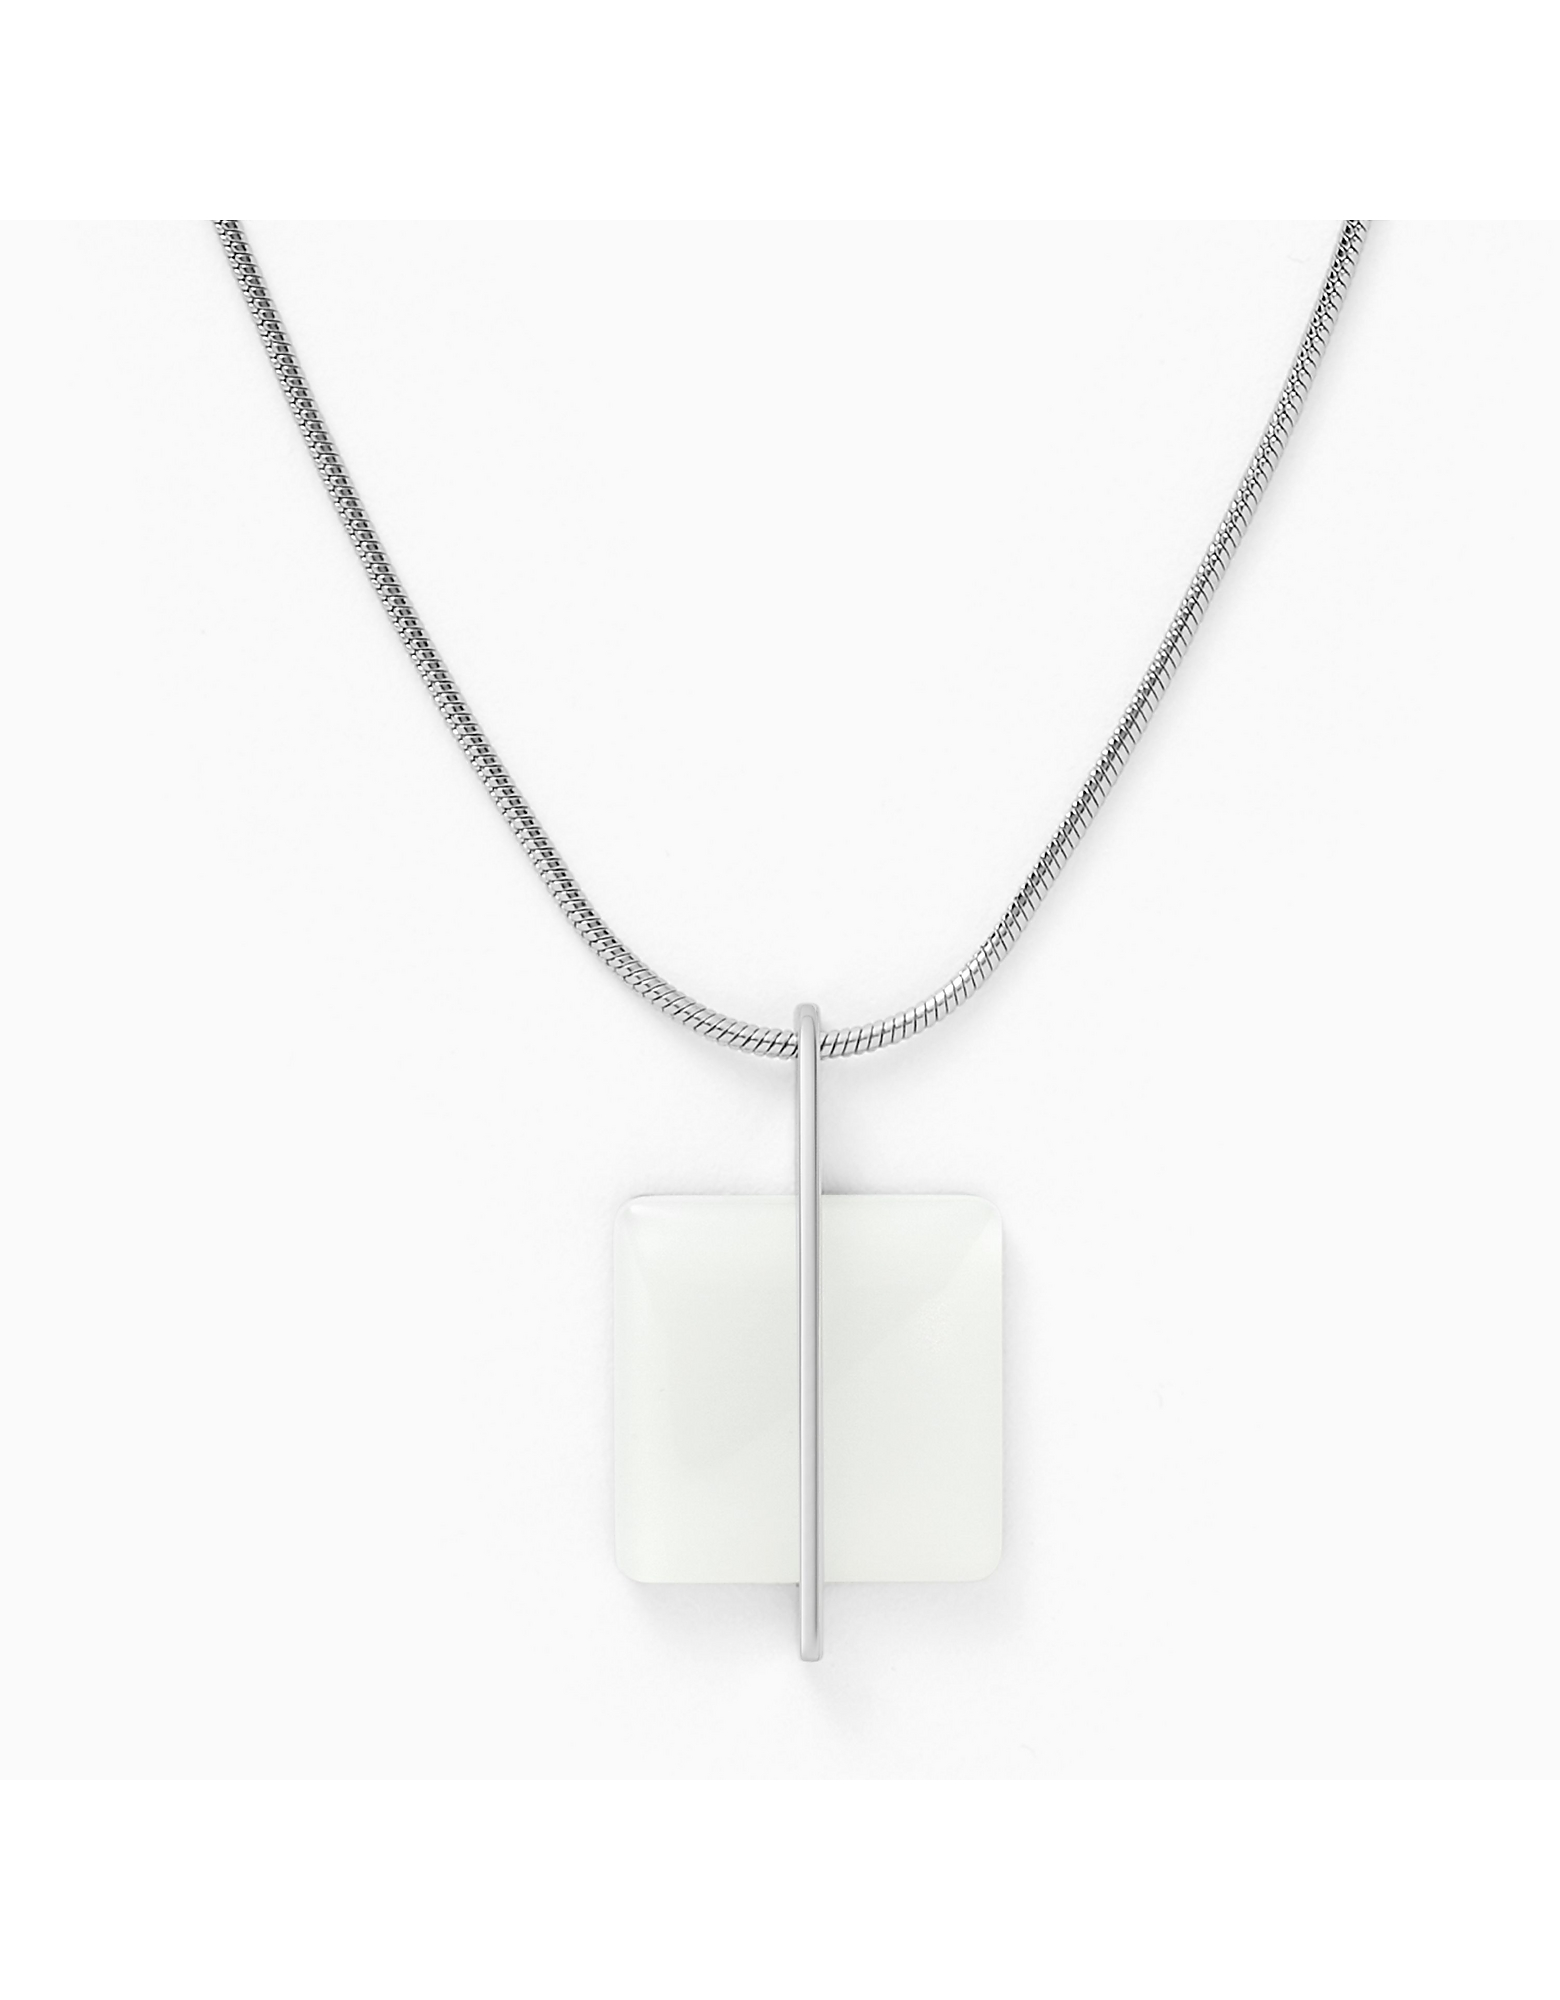 Skagen Designer Necklaces, Sea Glass Stainless Steel Women's Necklace